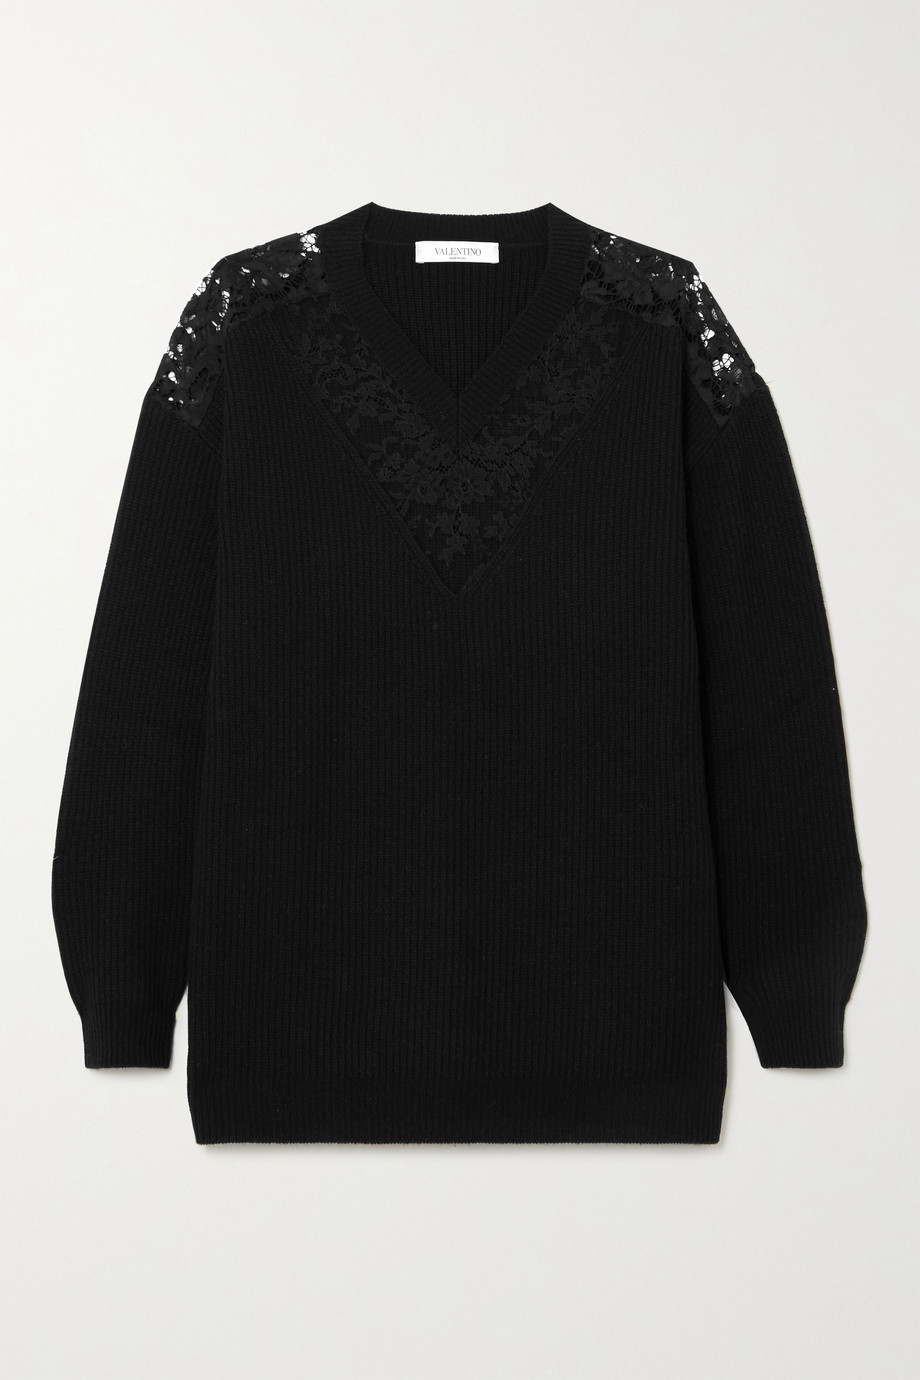 Valentino Lace-paneled ribbed wool and cashmere-blend sweater